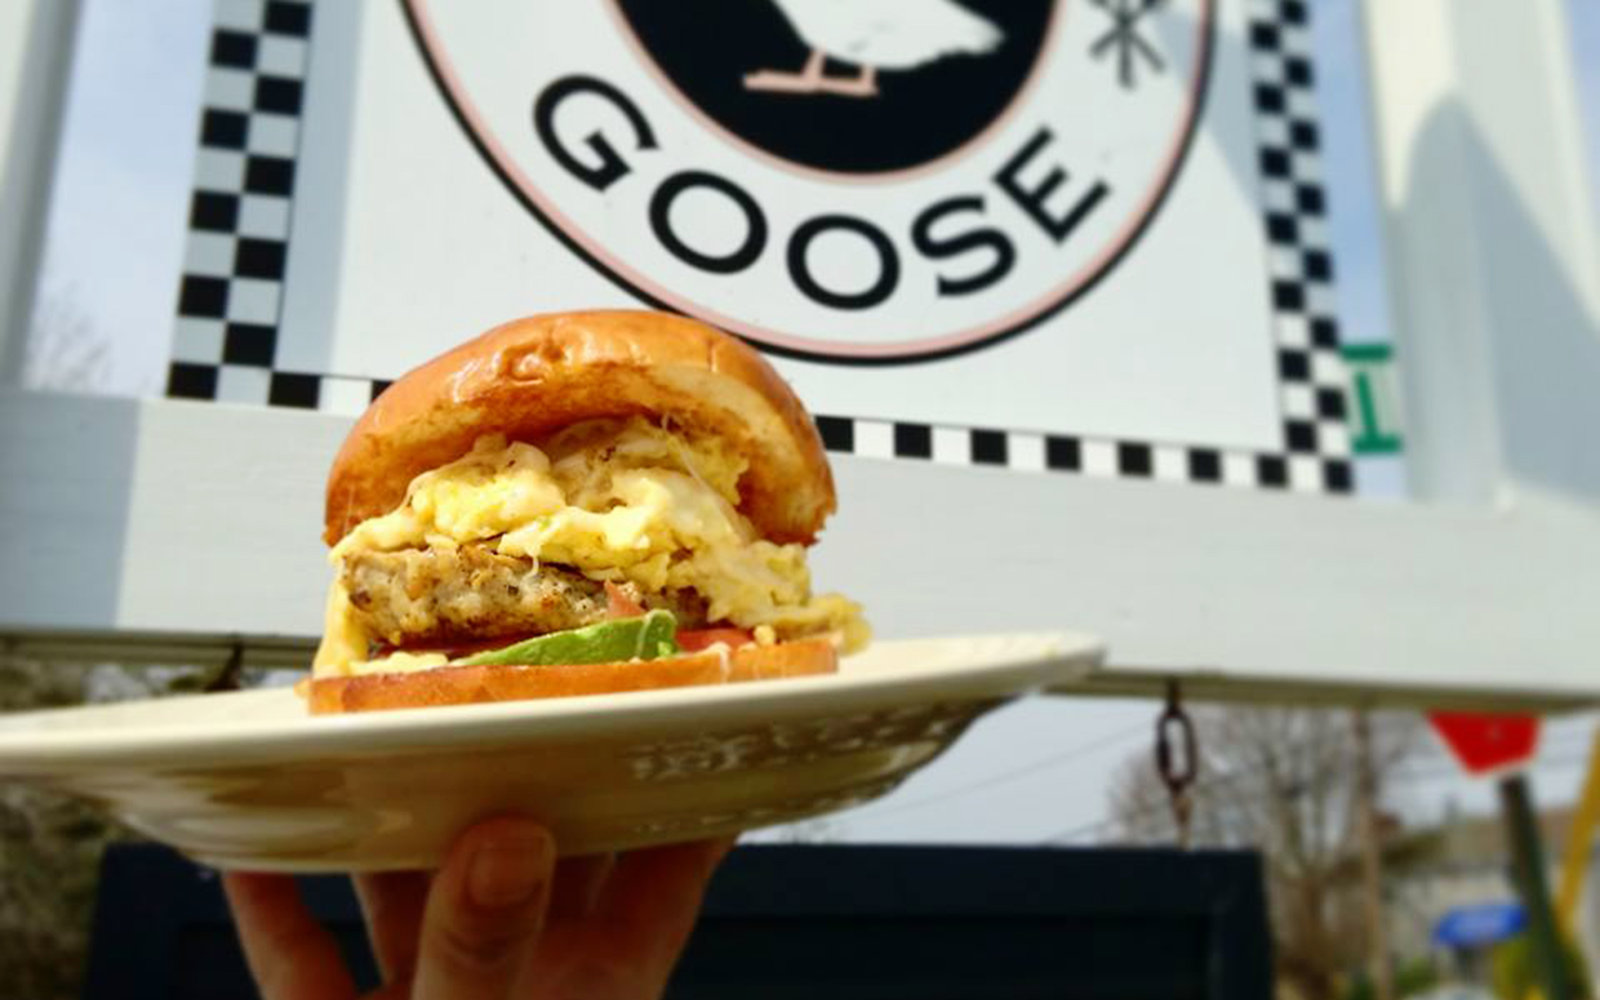 The Cooked Goose Restaurant in Rhode Island